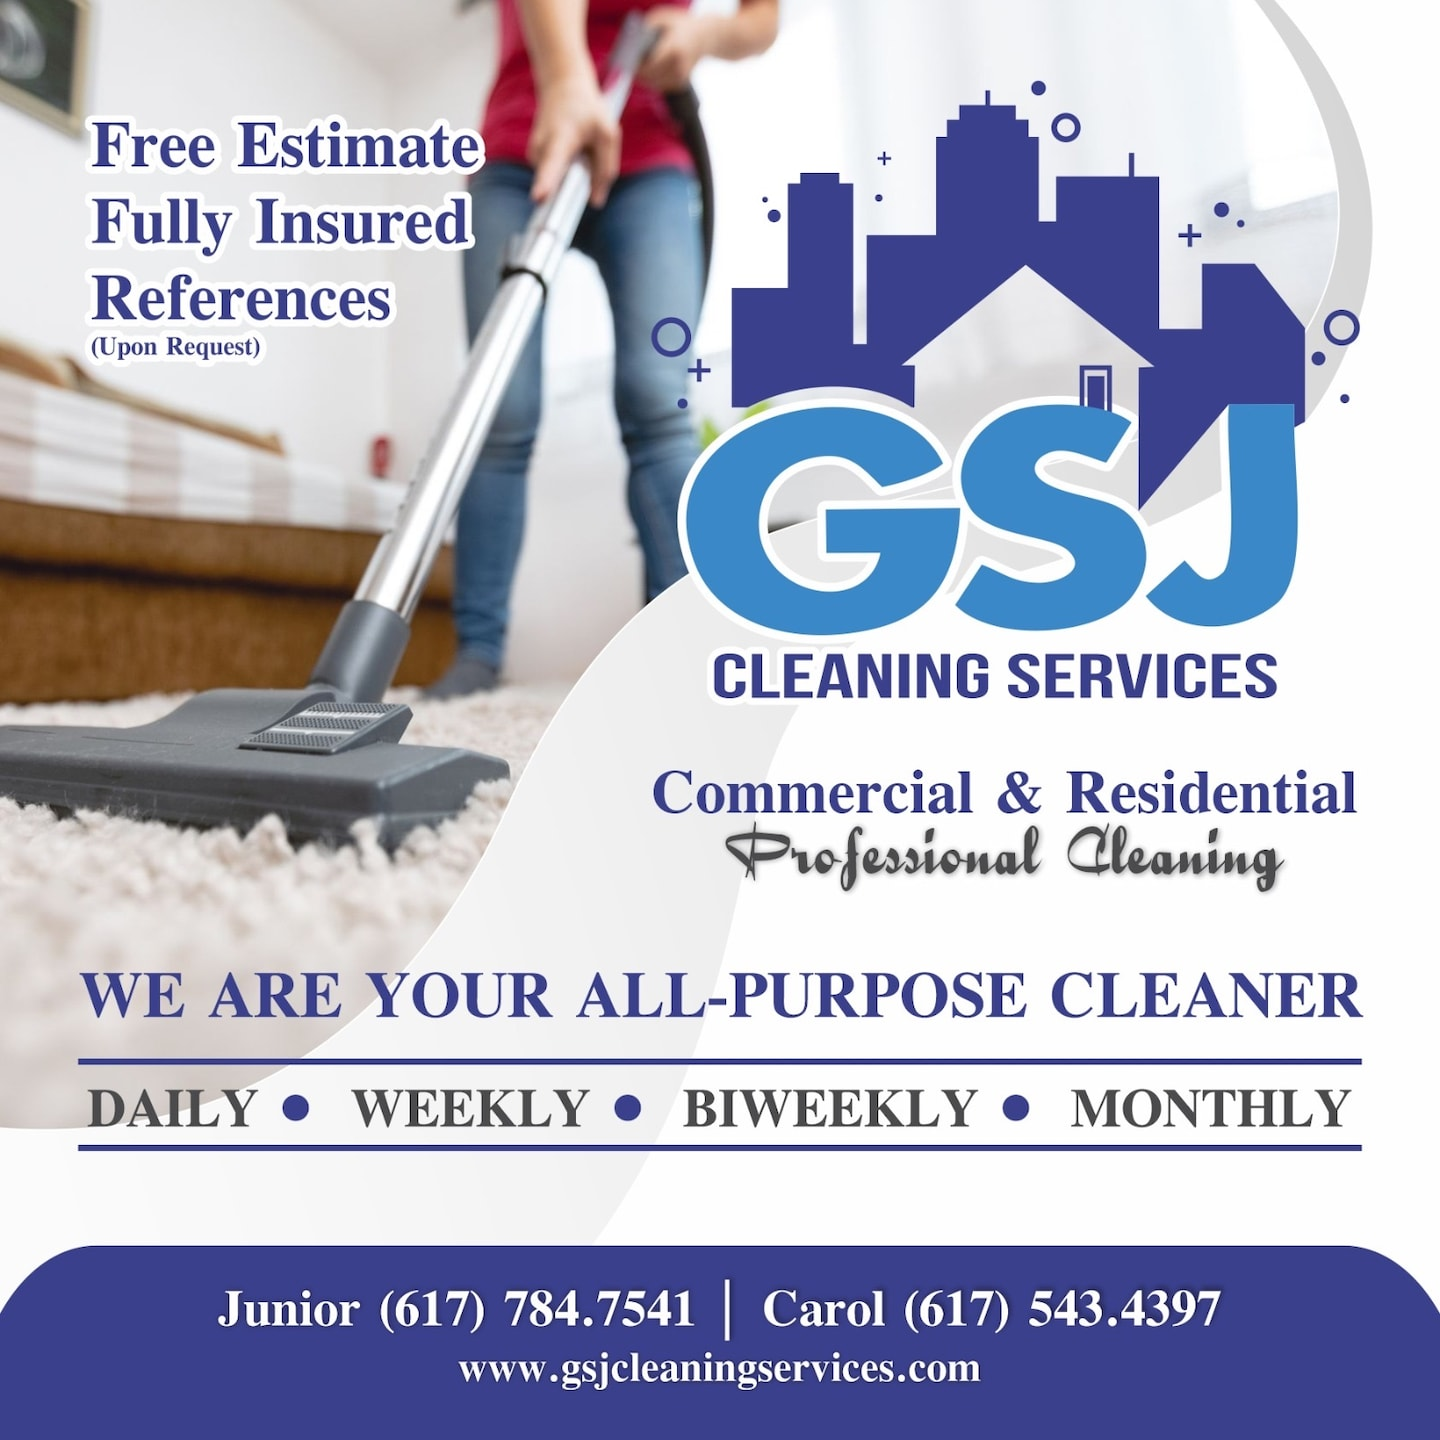 GSJ Cleaning Services